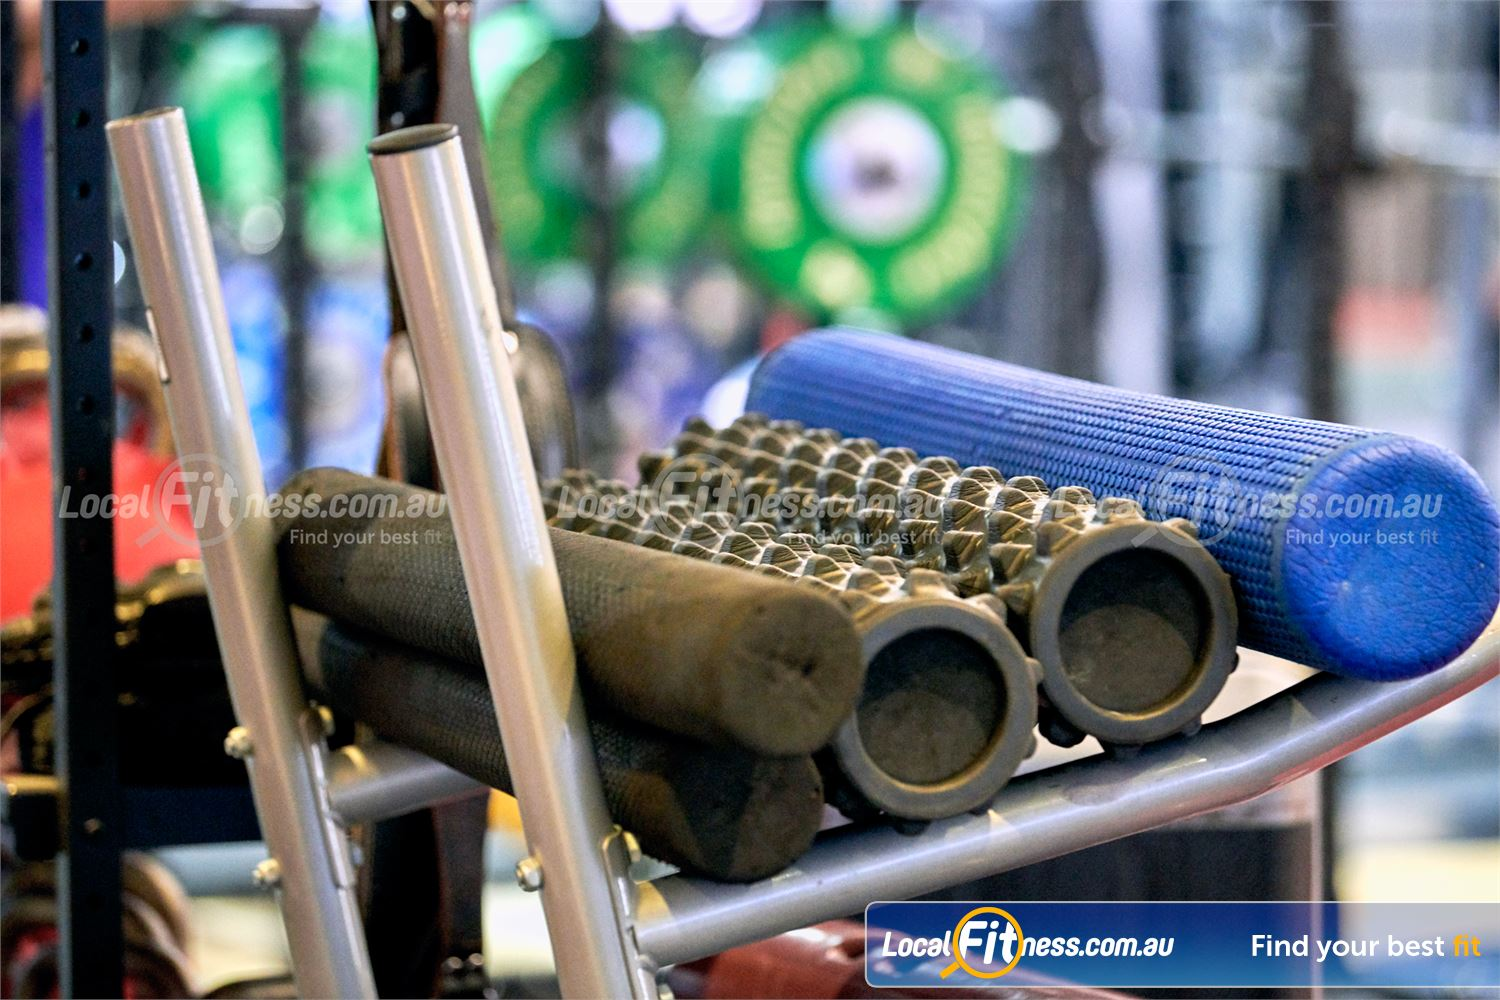 Fitness First Canberra City Near Capital Hill Get into active recovery with foam rollers.